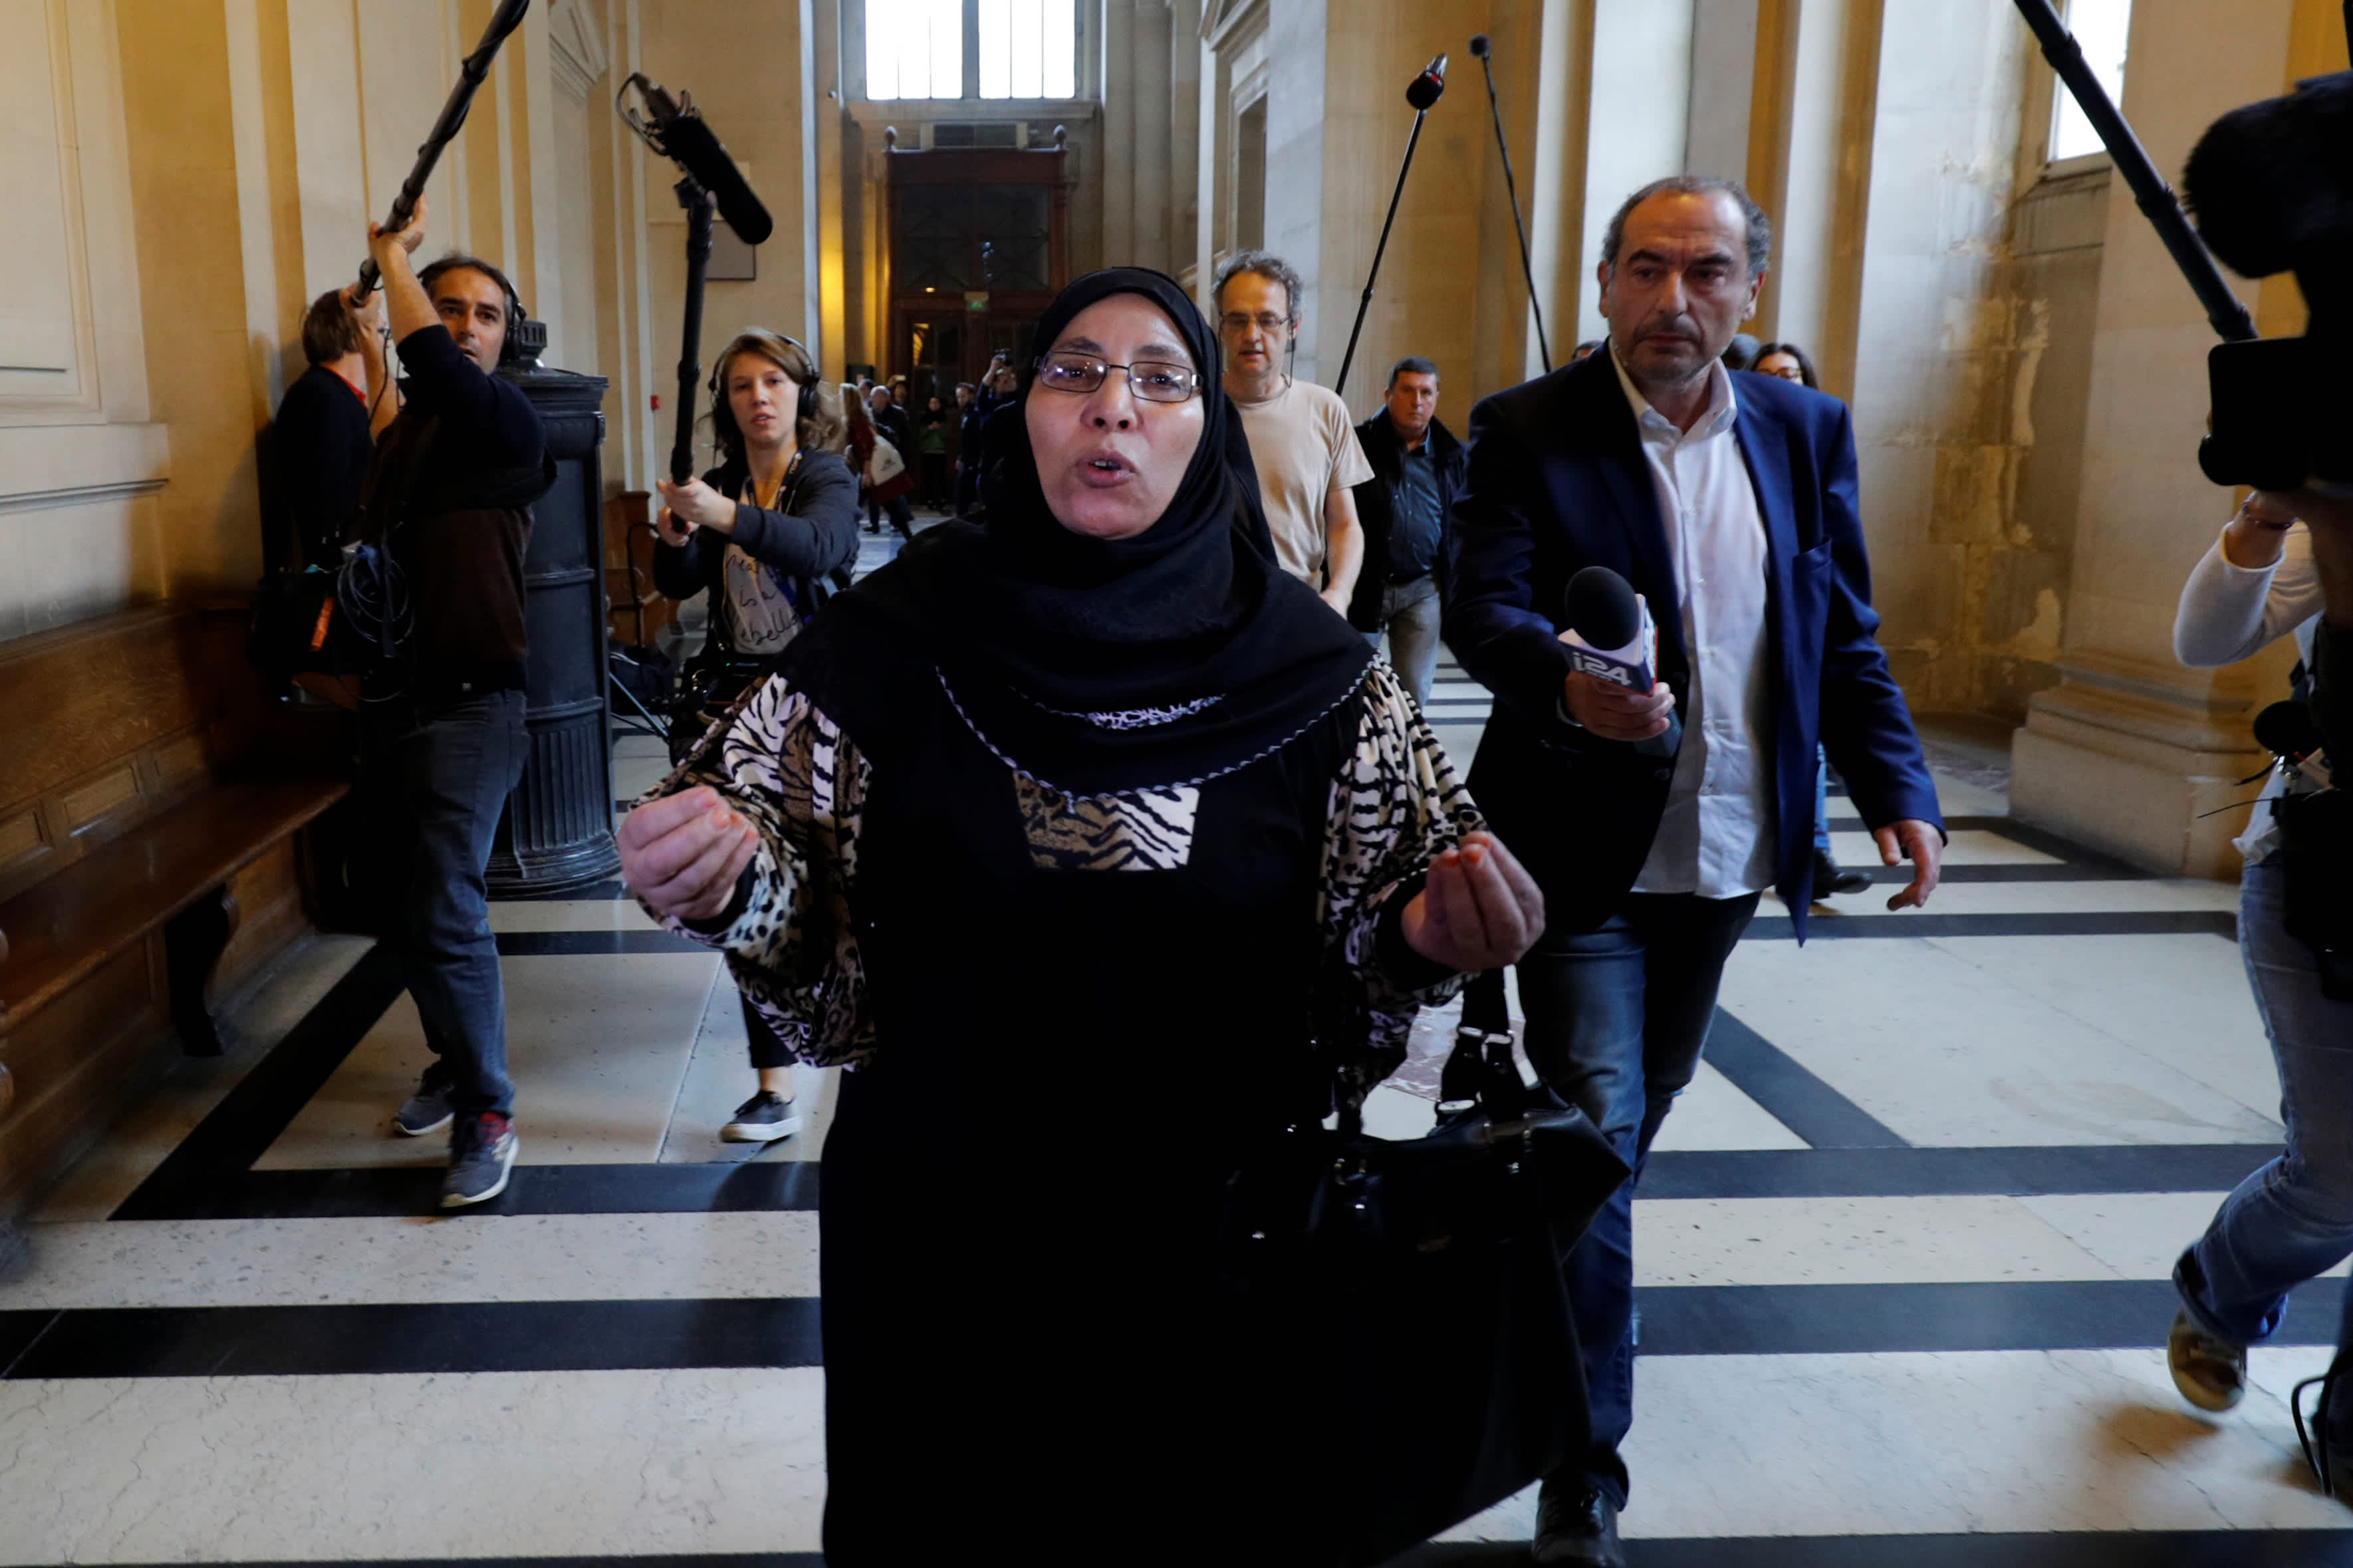 Zoulikha Aziri, the mother of gunman Islamist militant Mohammed Merah, leaves during the trial of her son Abdelkader Merah, who stands accused of complicity in the shootings , at the courthouse in Paris, France, October 2, 2017. (Reuters)